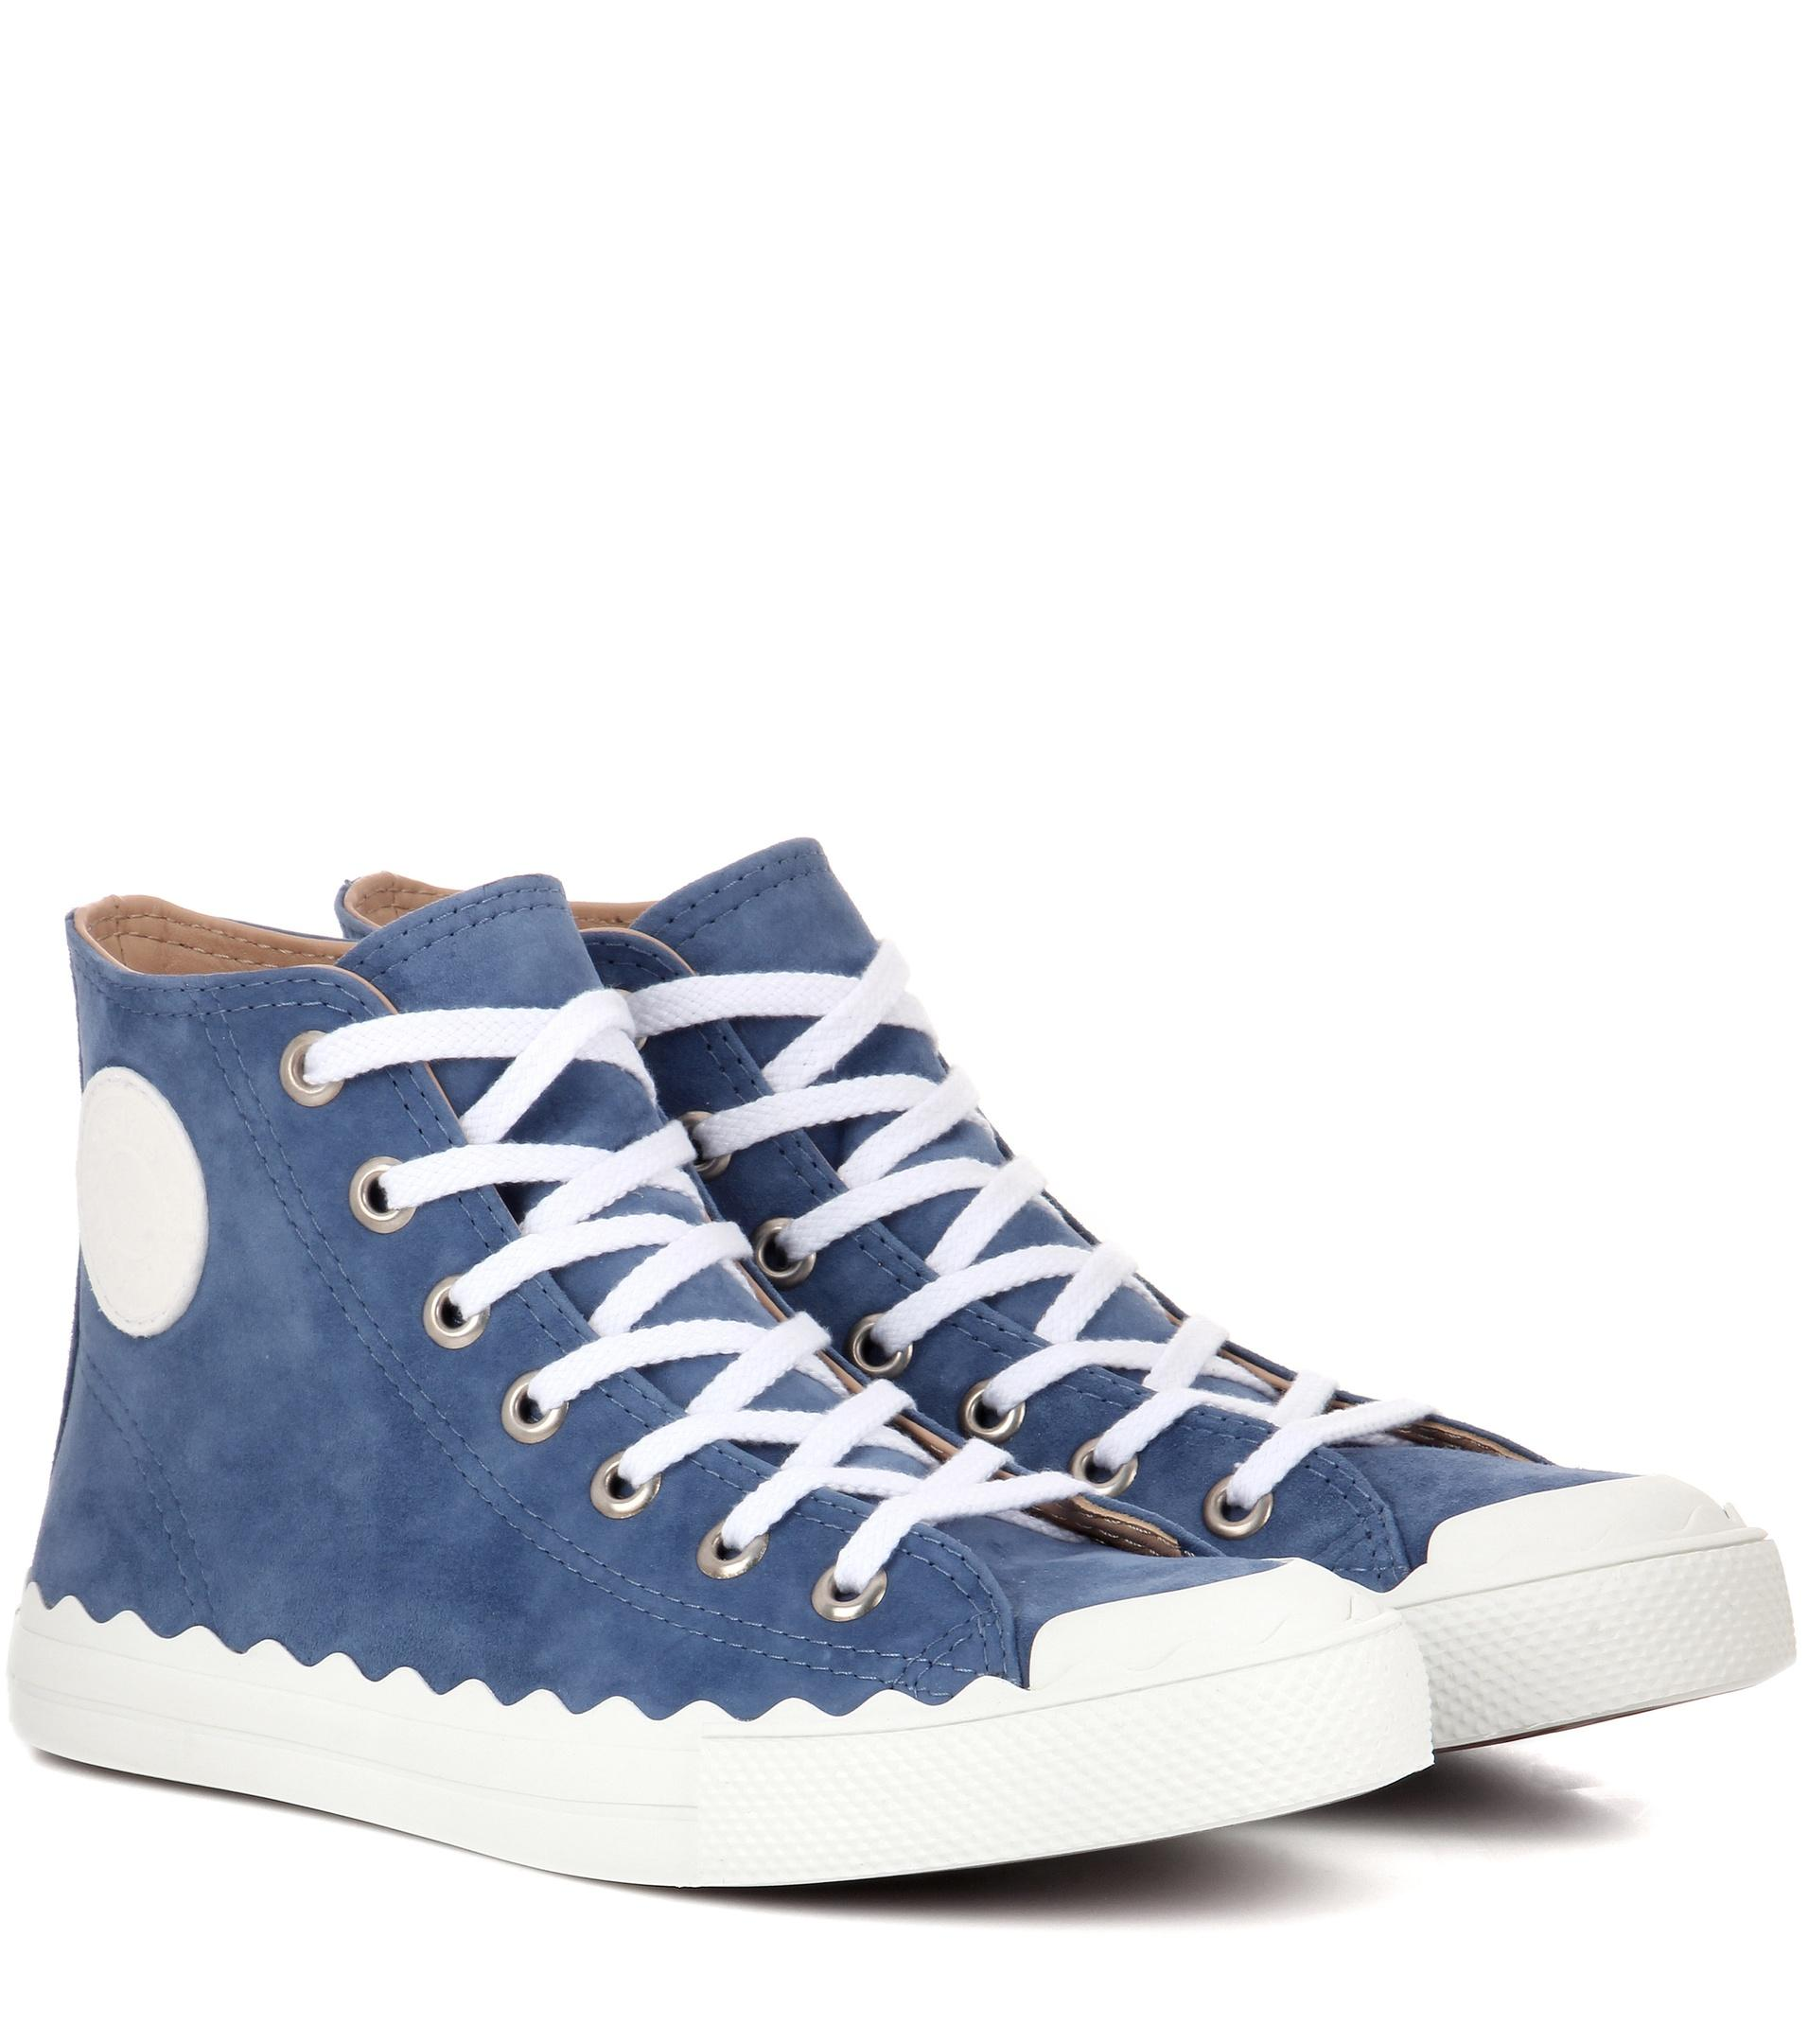 chlo kyle suede high top sneakers in blue lyst. Black Bedroom Furniture Sets. Home Design Ideas